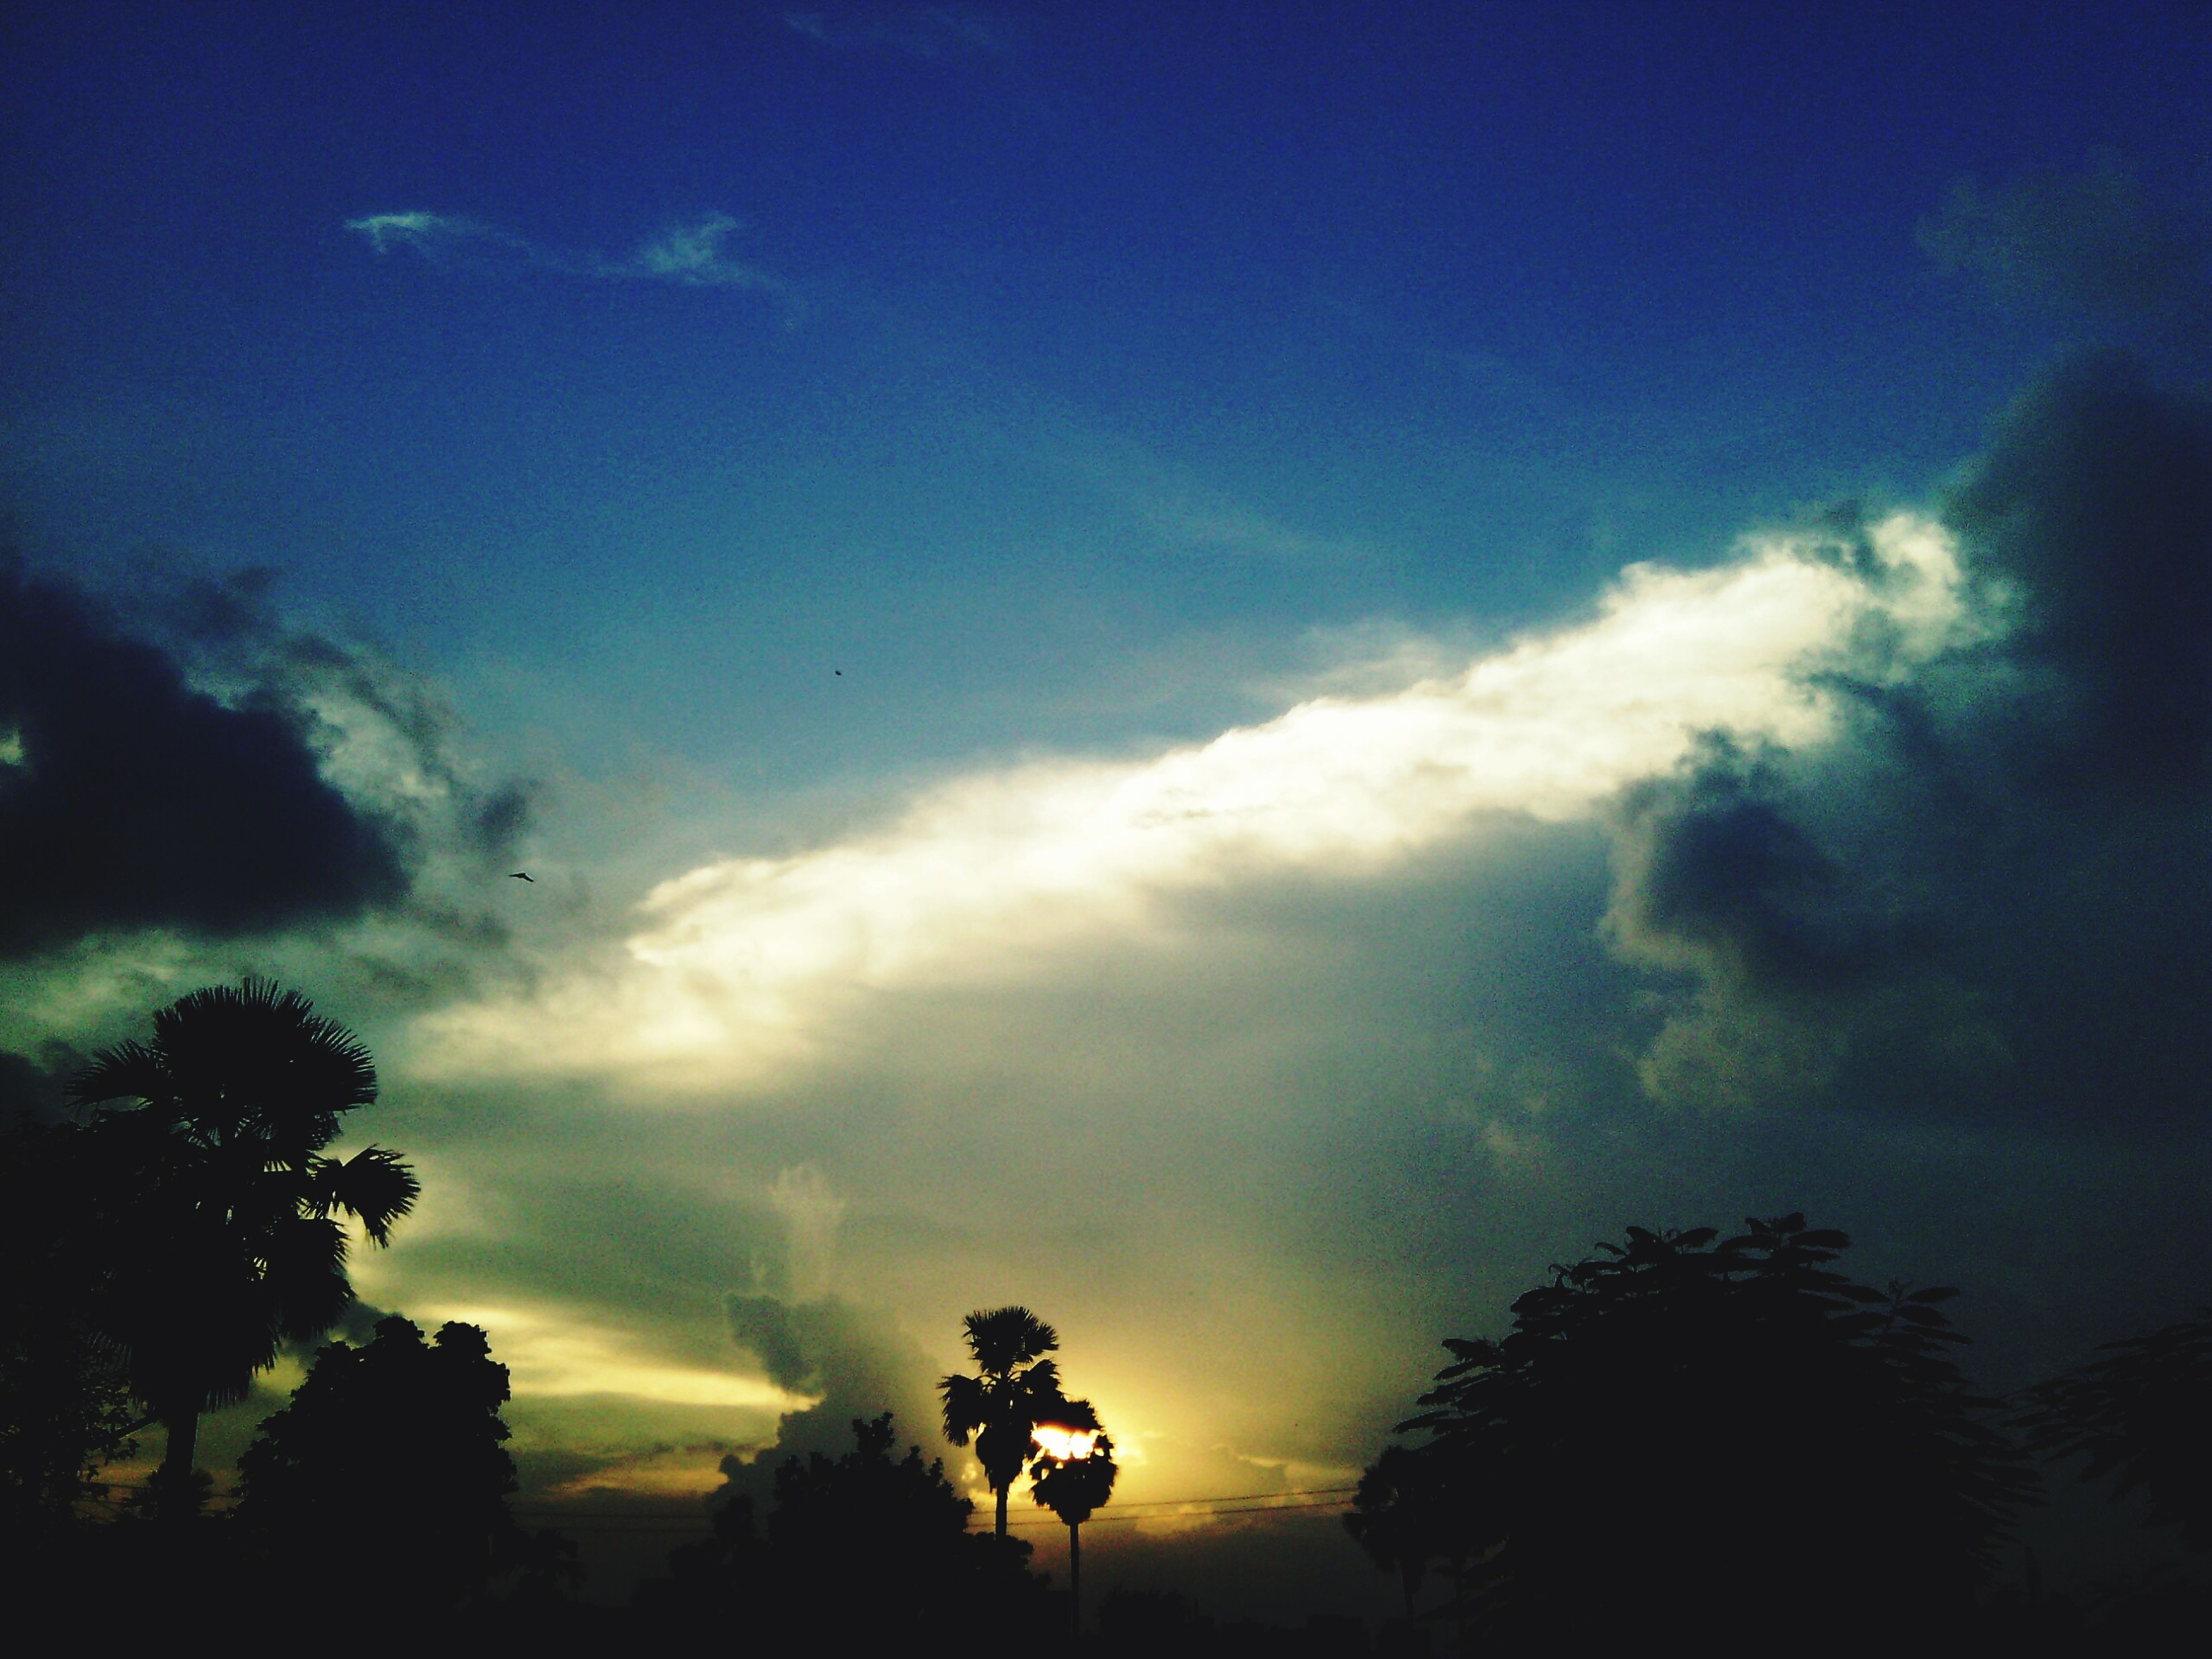 sky, tree, silhouette, cloud - sky, beauty in nature, sunset, low angle view, tranquility, scenics, tranquil scene, nature, growth, cloudy, cloud, idyllic, dramatic sky, outdoors, dusk, no people, blue